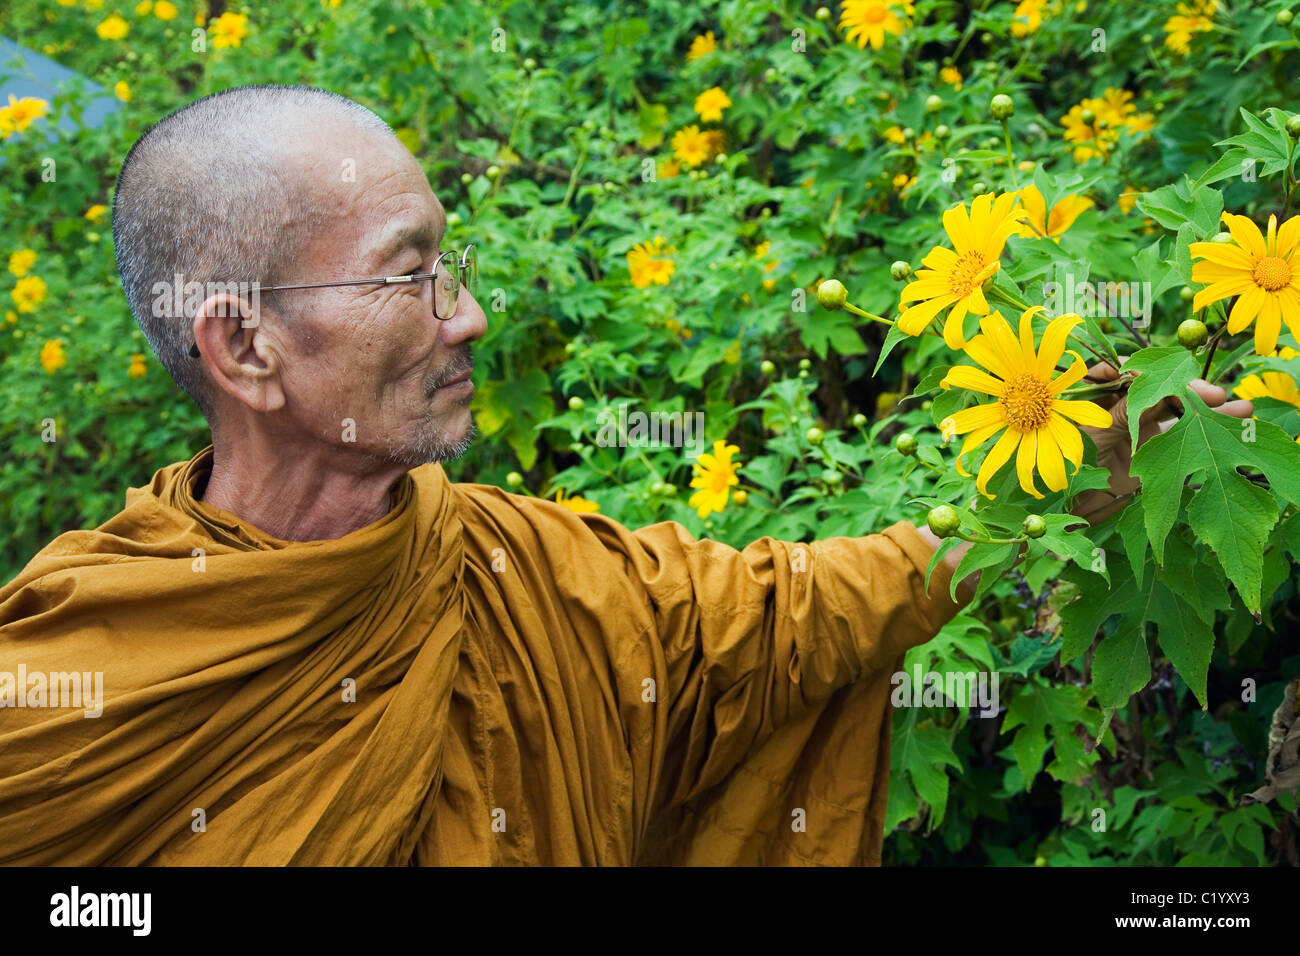 A monk looks at wild sunflowers during the Bua Tong Bloom Festival. Khun Yuam, Mae Hong Song province, THAILAND. - Stock Image